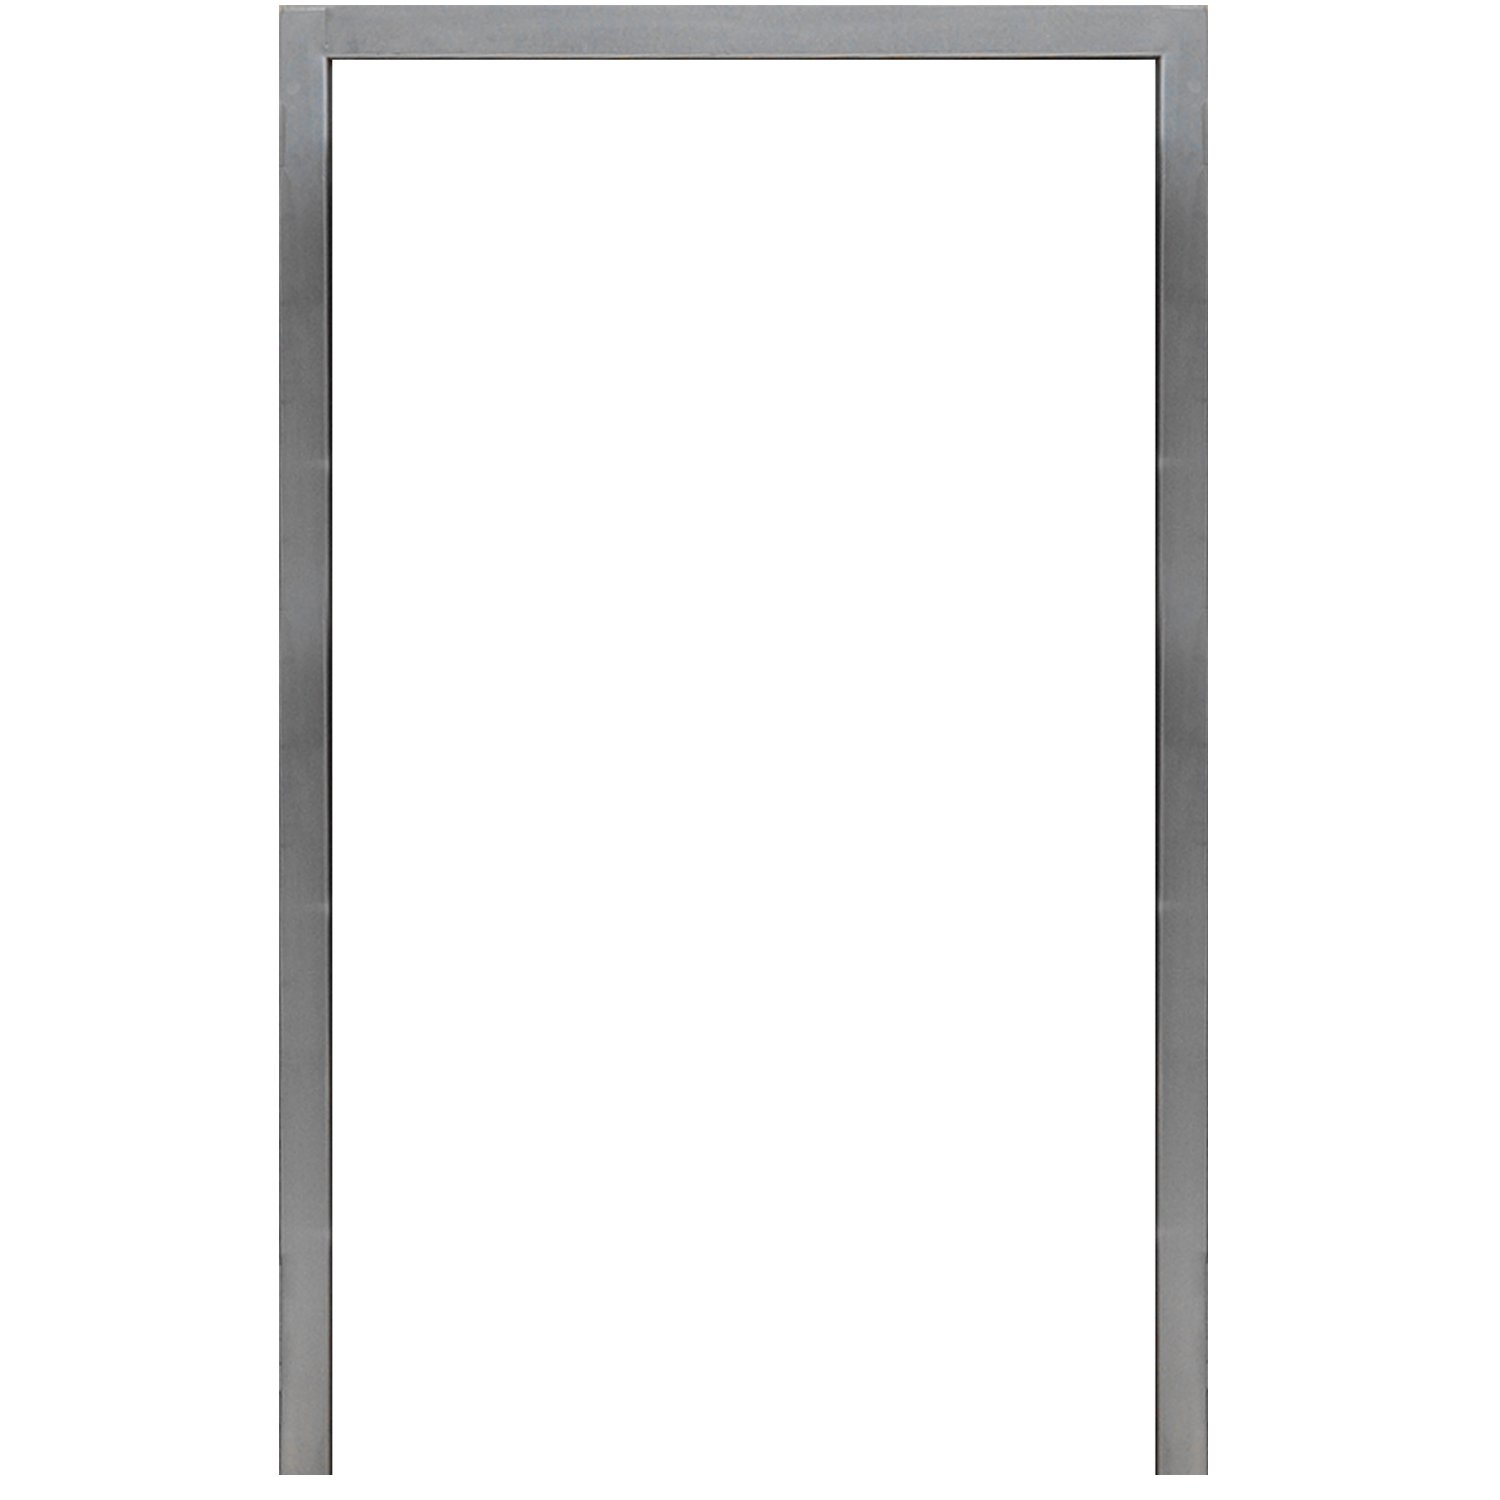 Cal Flame BBQ04101235 Outdoor Refrigerator Frame for DIY Island, 32.5'' x 25'', Stainless Steel by Cal Flame